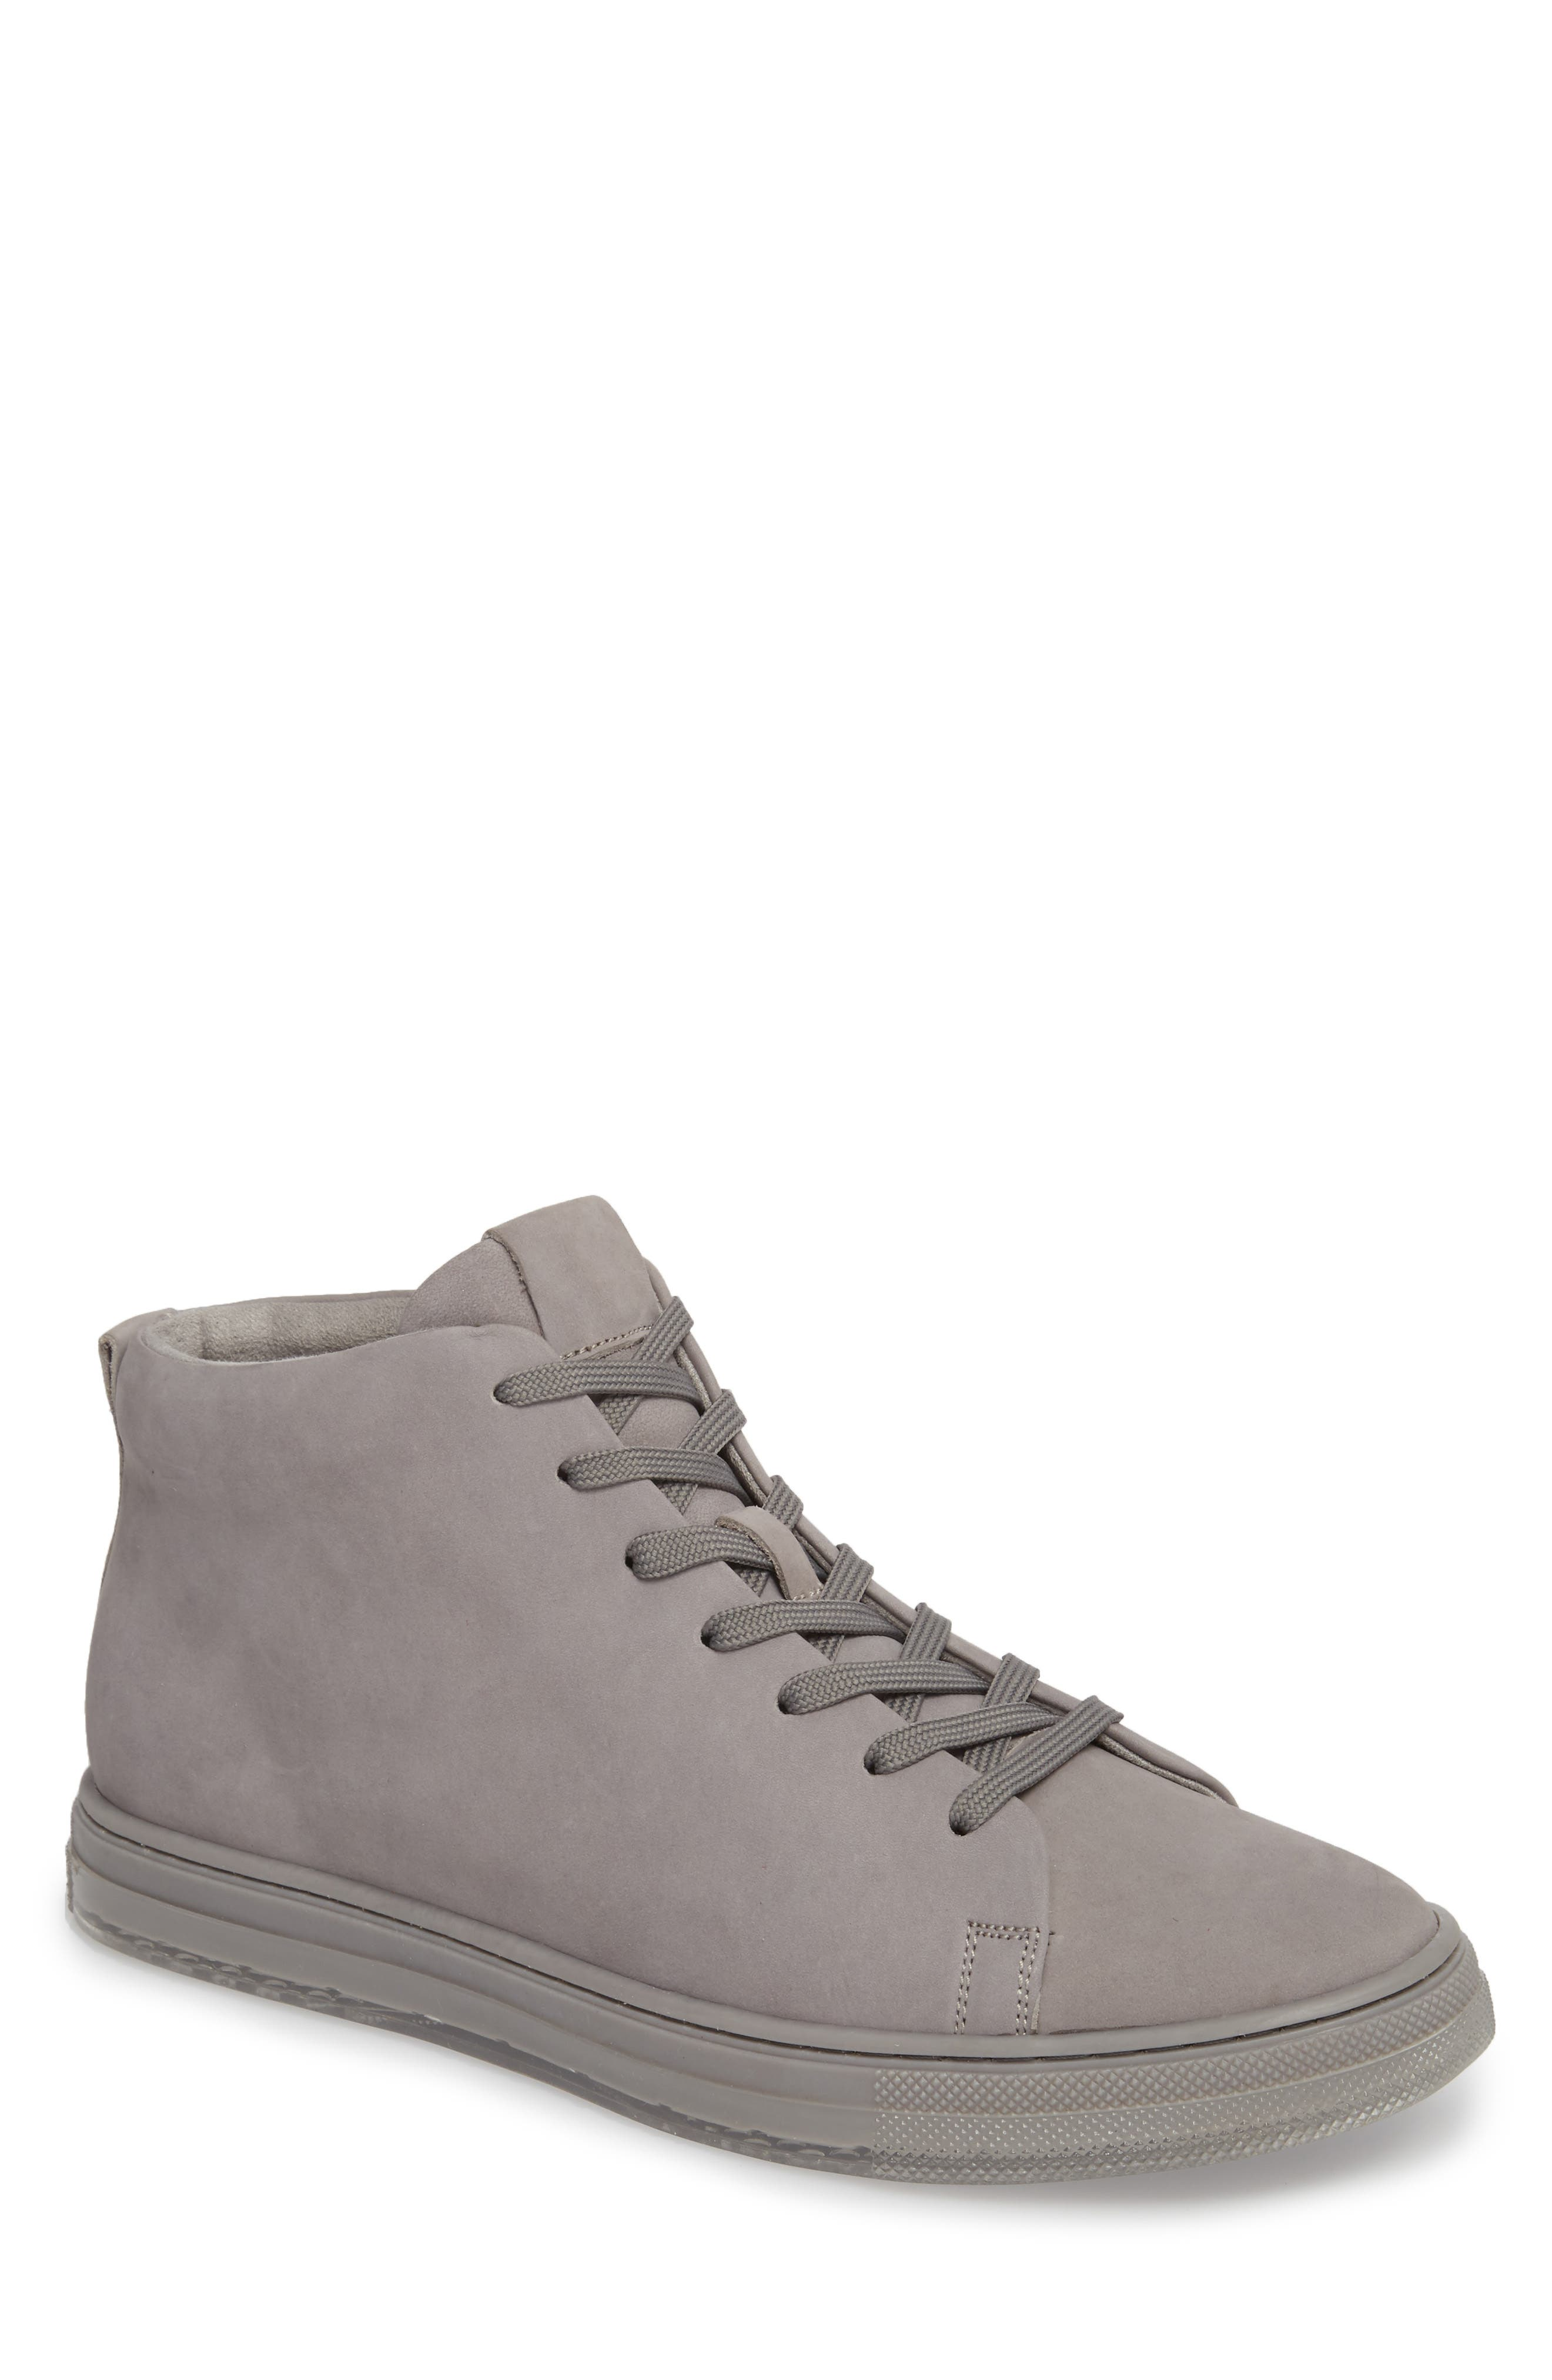 Colvin Sneaker,                         Main,                         color, 050